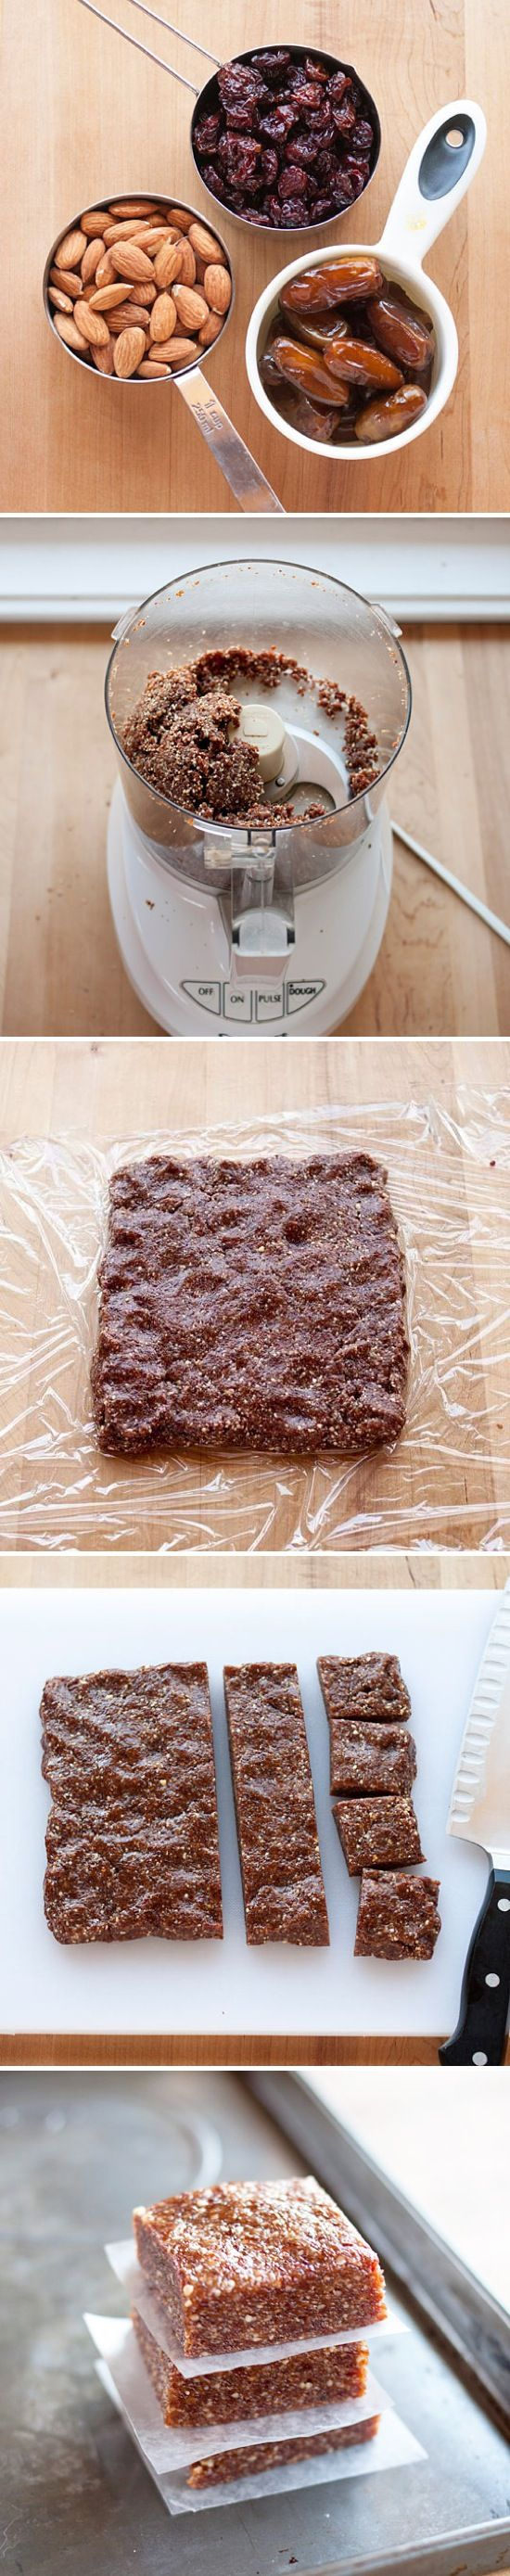 3 Ingredient Energy Bars by recipebyphoto from thekitchn #Energy_Bars